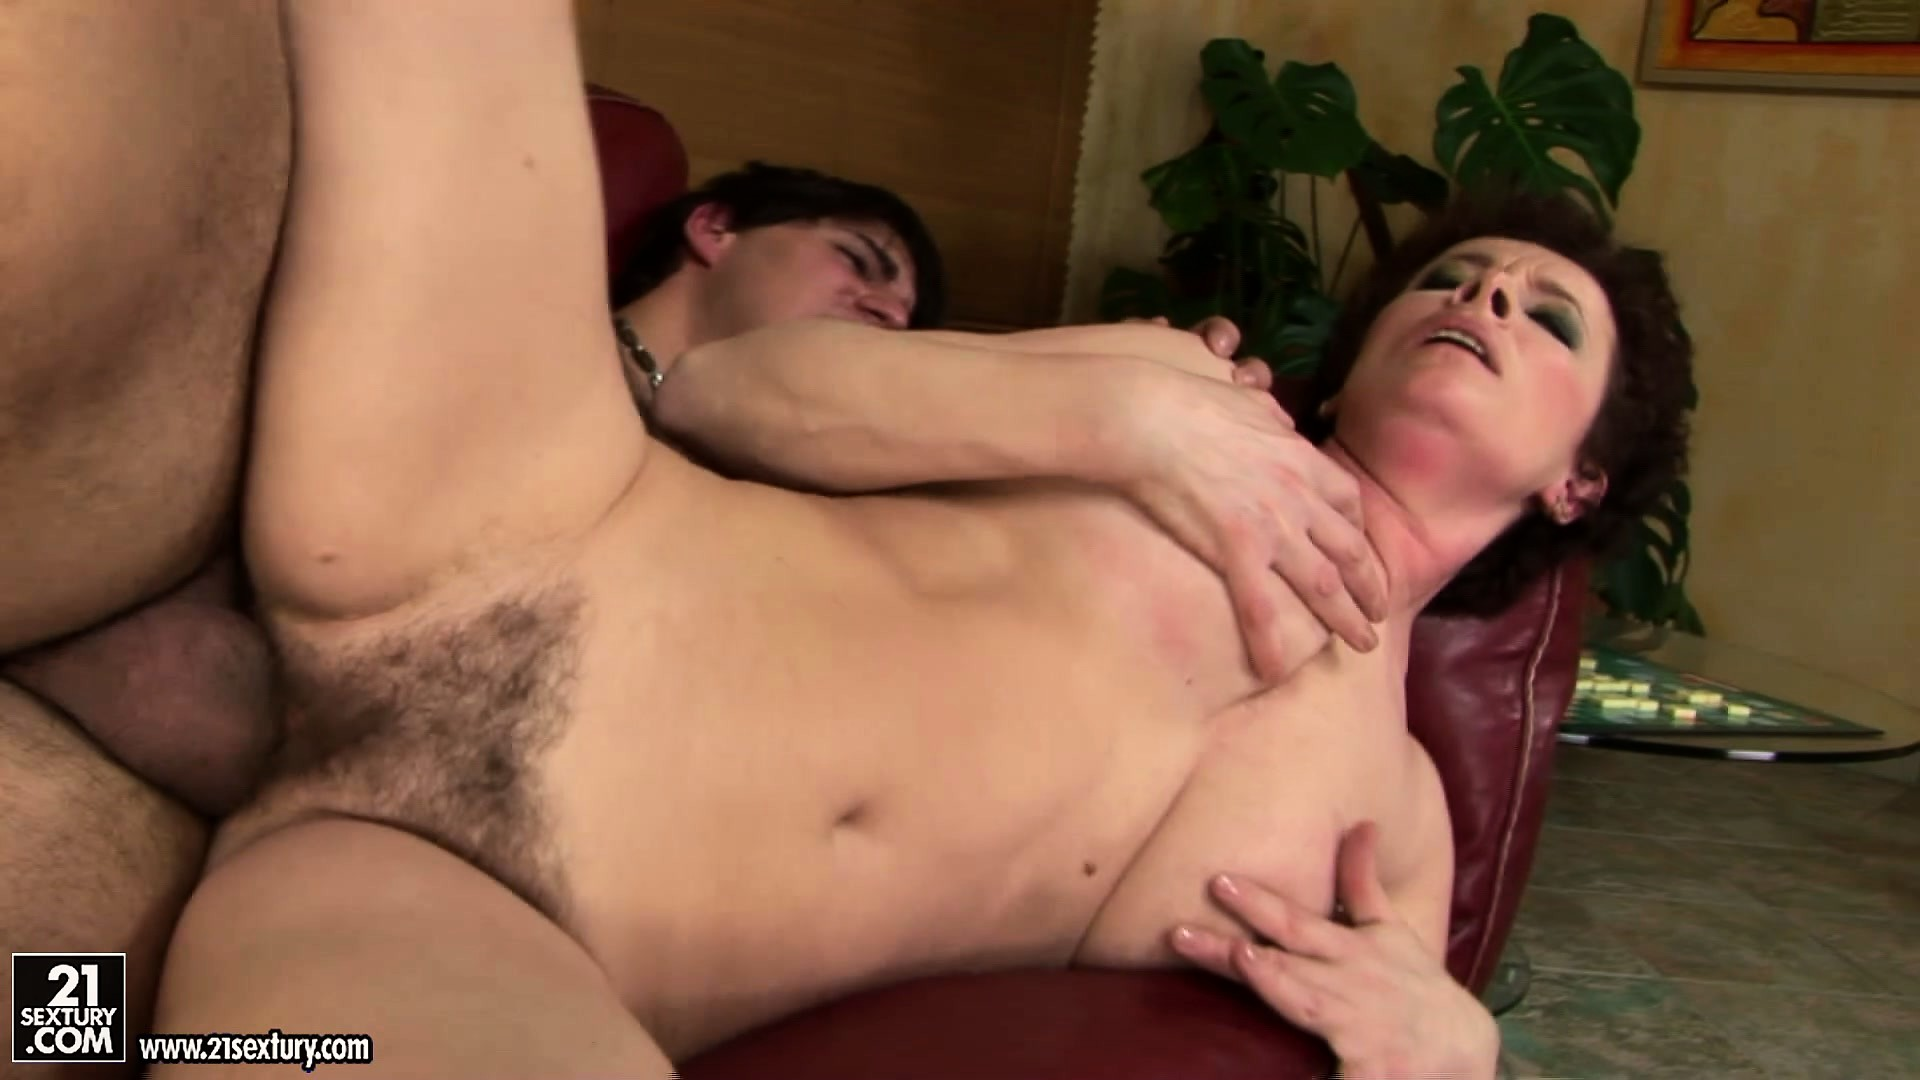 Porno Video of It's Fun For The Pupil When He Gets To Hammer The Teacher's Hairy Snatch